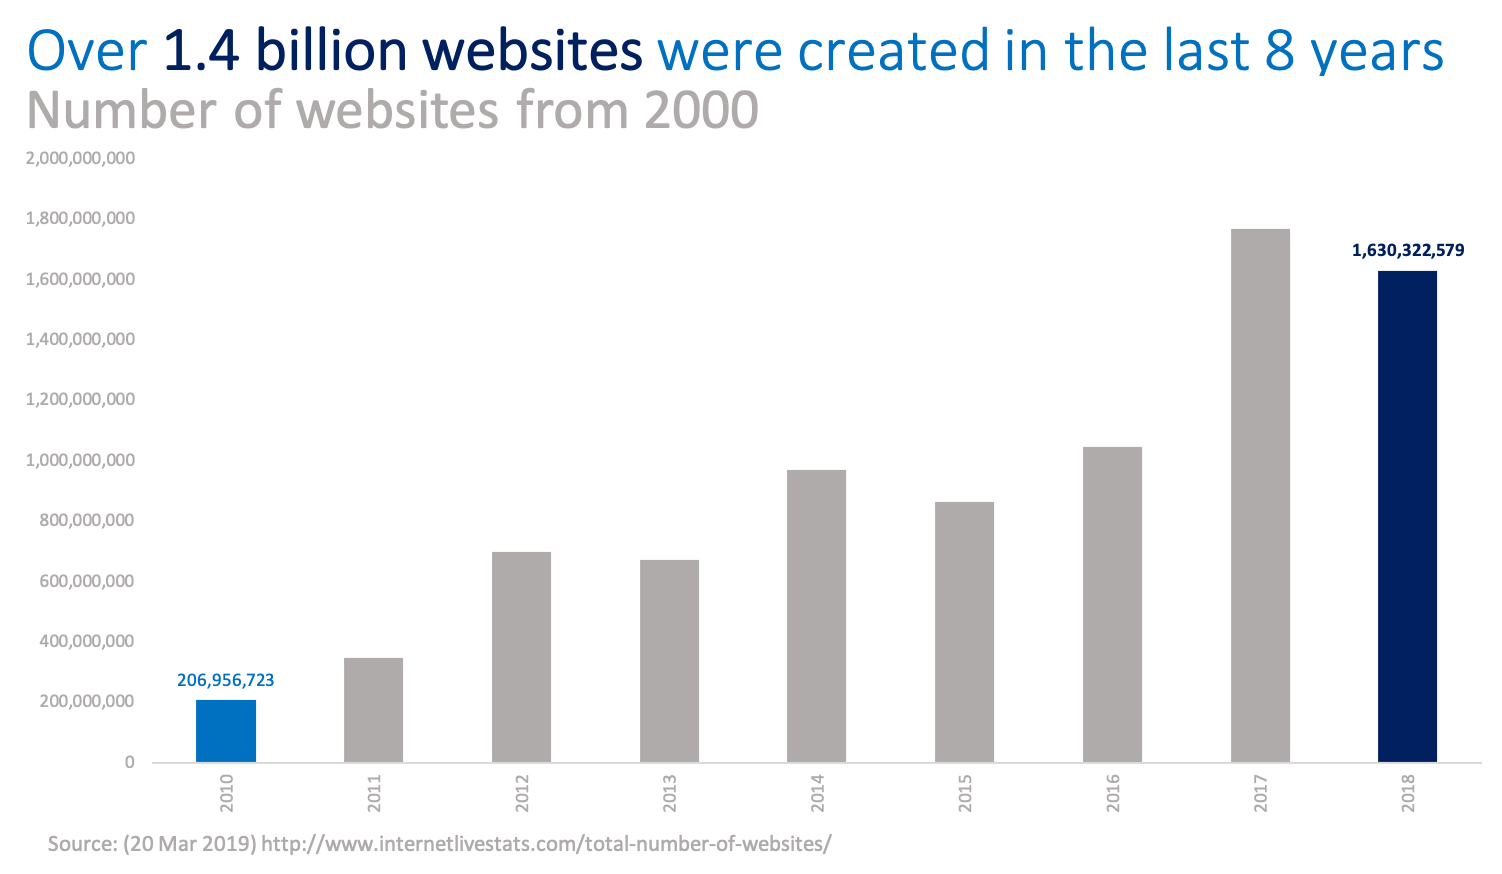 The number of new websites in the last 8 years have skyrocketed